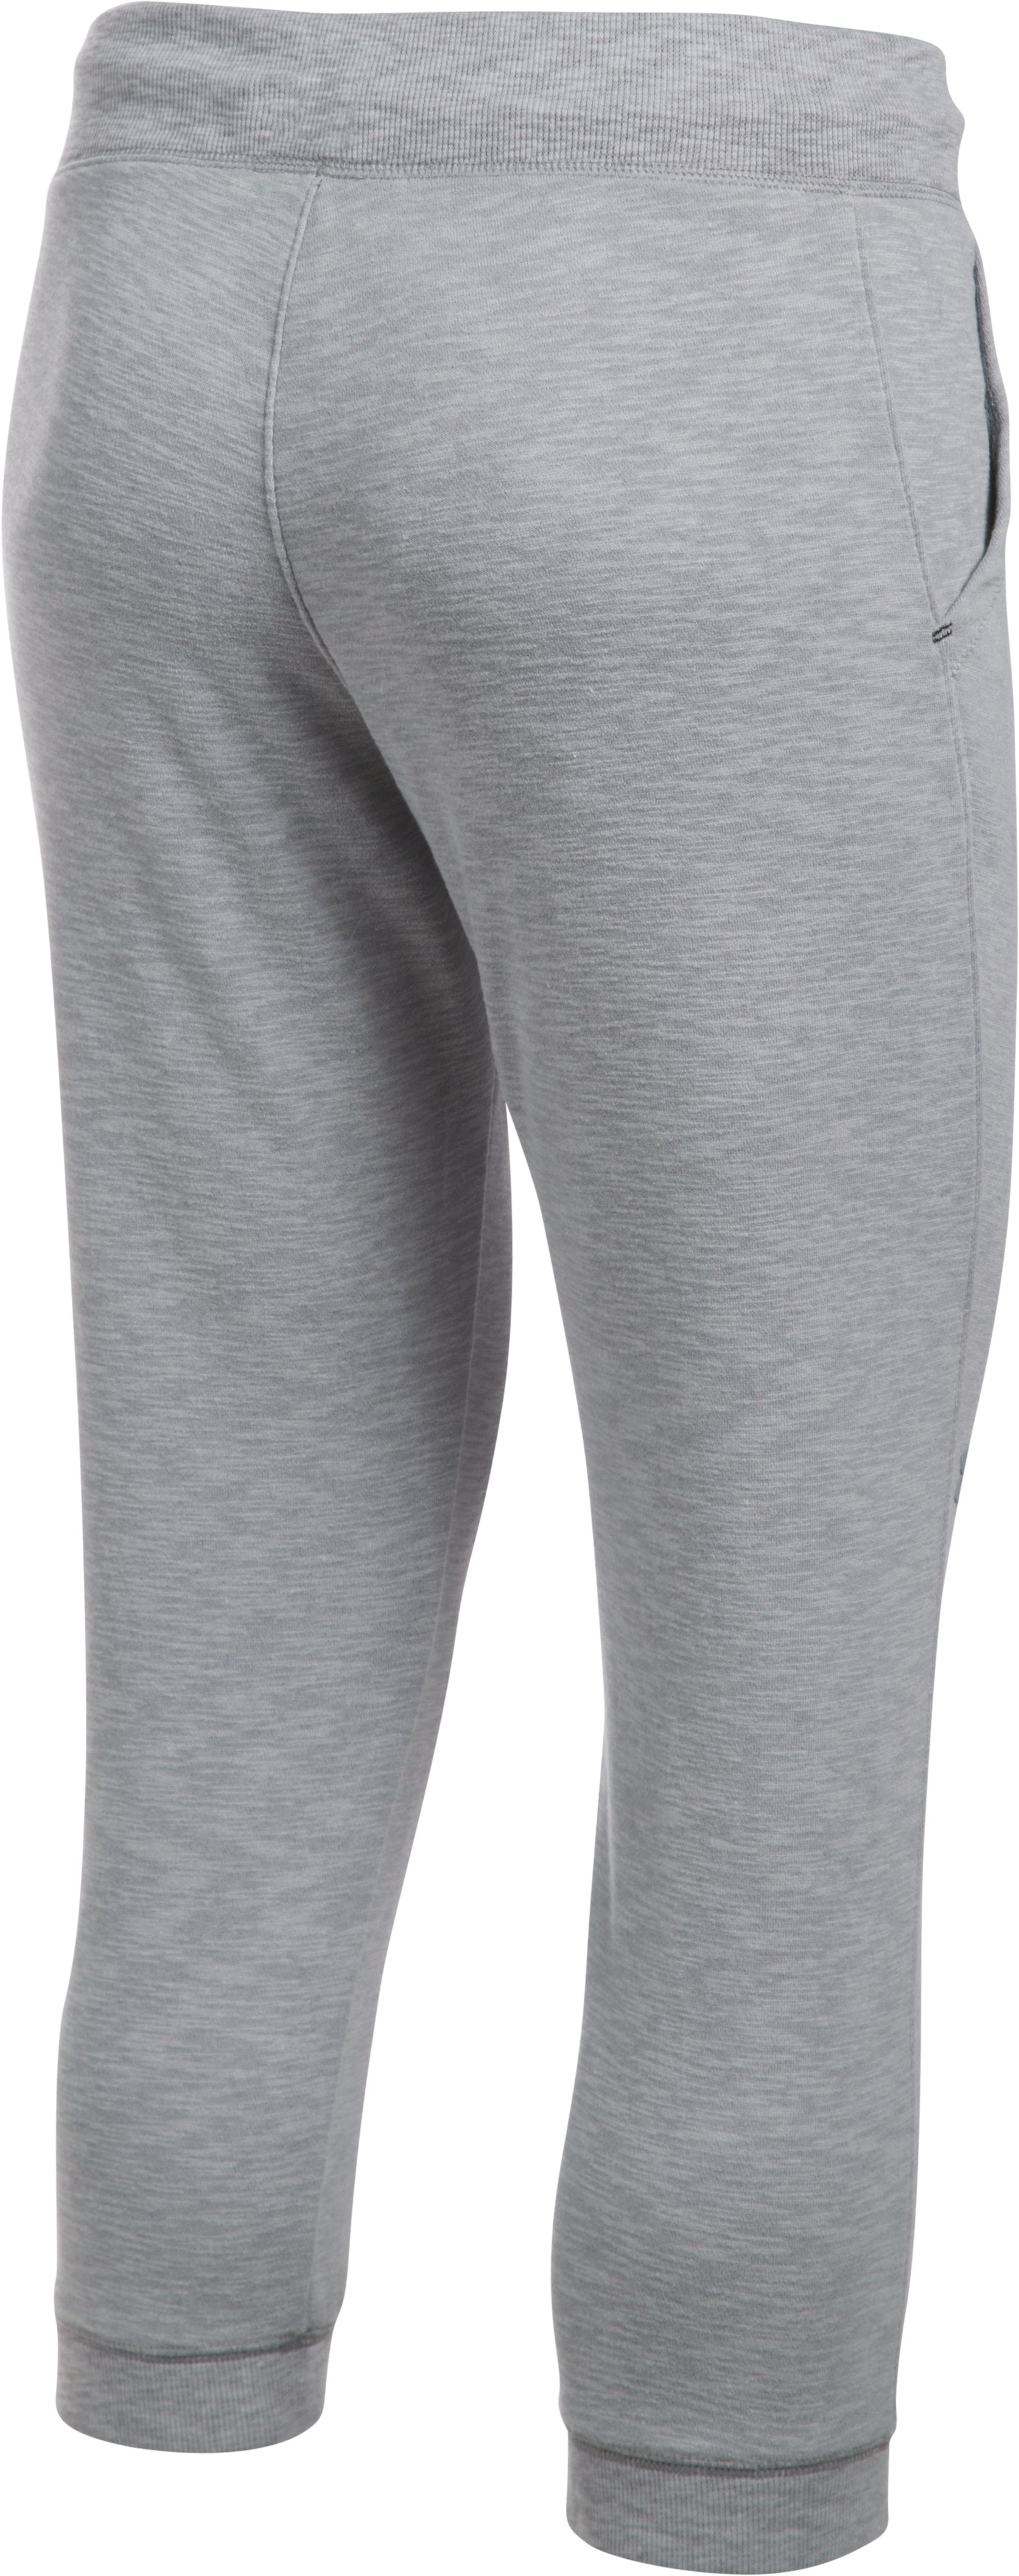 Women's UA Ocean Shoreline Terry Capris, True Gray Heather,